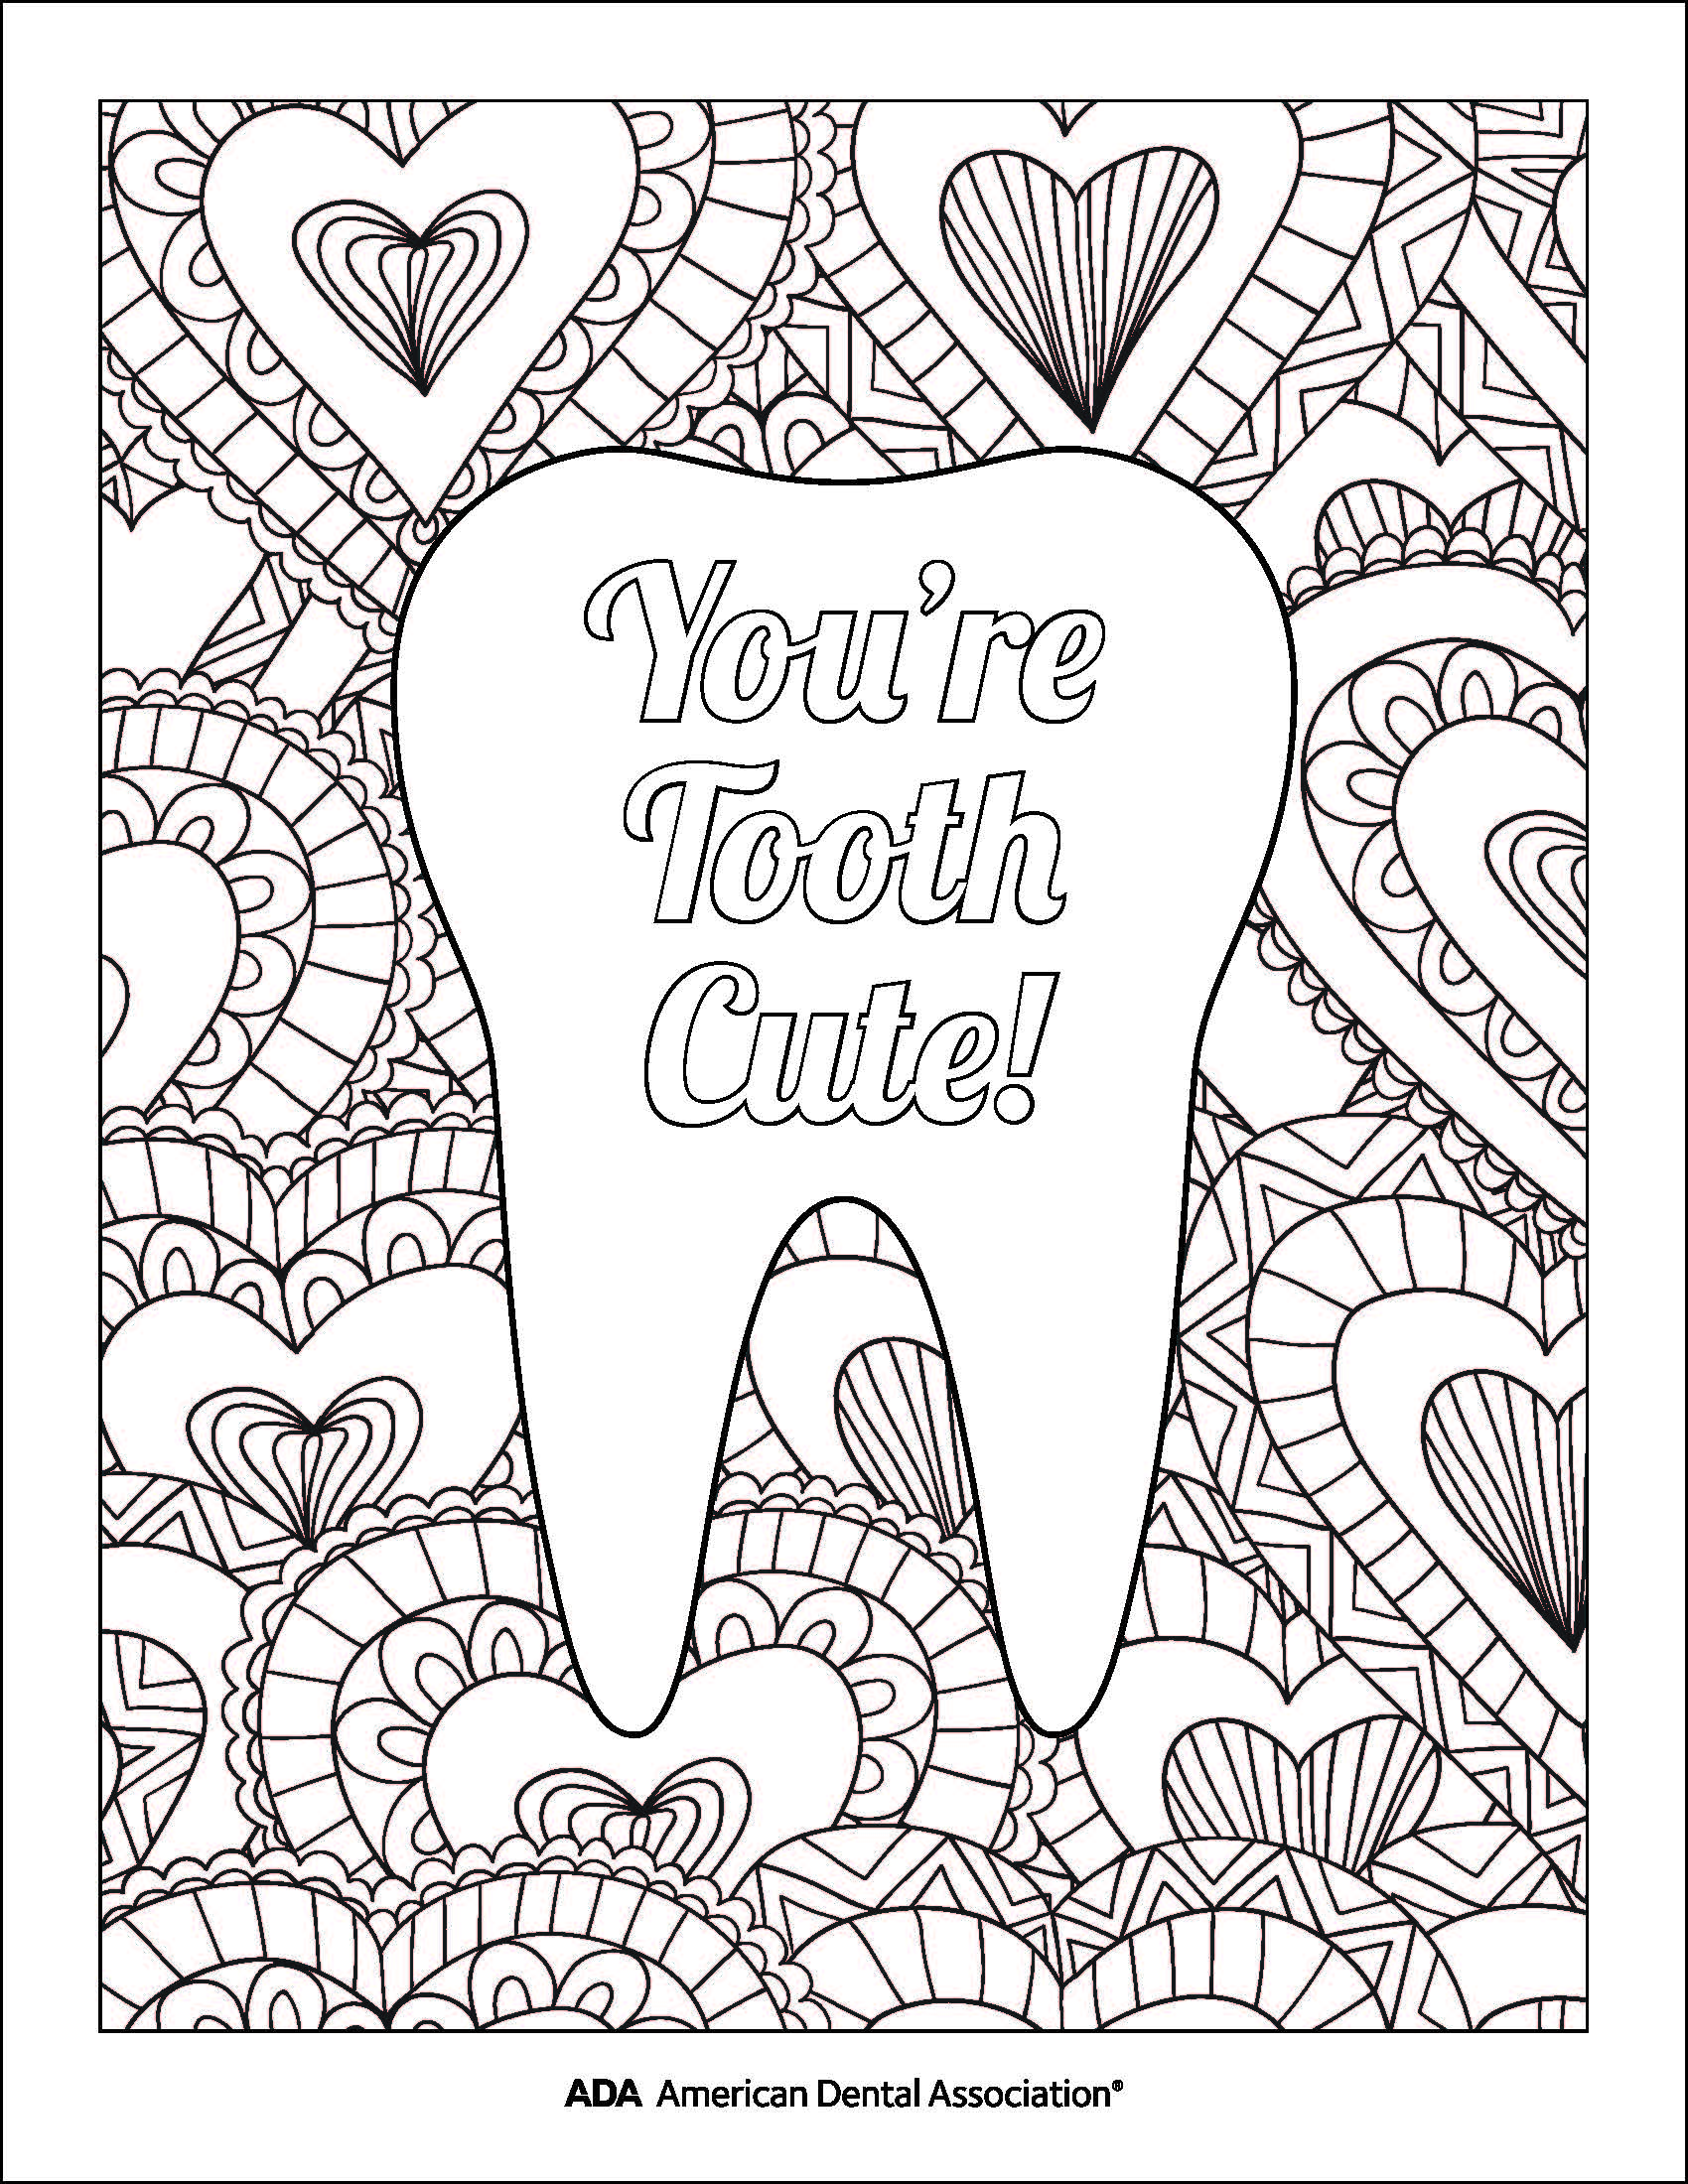 Western Dental Kids - Coloring Sheet